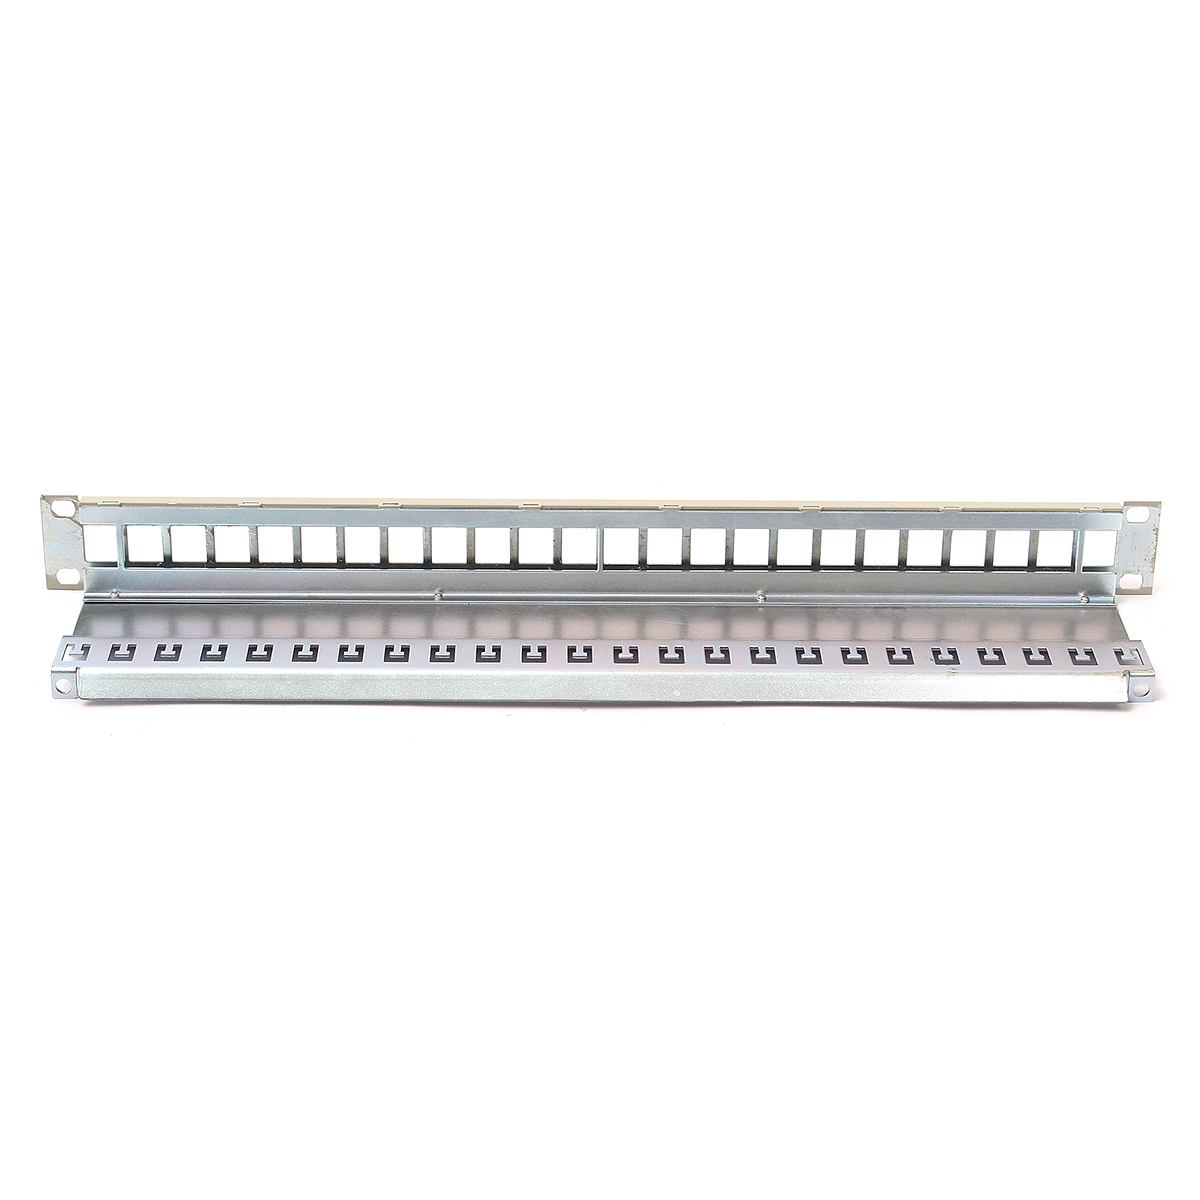 Leory 48 Port Cat5e Rj45 110 Network Ethernet Rack Mount 2u 2ru Two 19inch Cat6 Utp Patch Panel T568a T568b Wiring 1ru Termination 24 Empty Six Shielded Modular Panels Blank Frame With Cable Manager